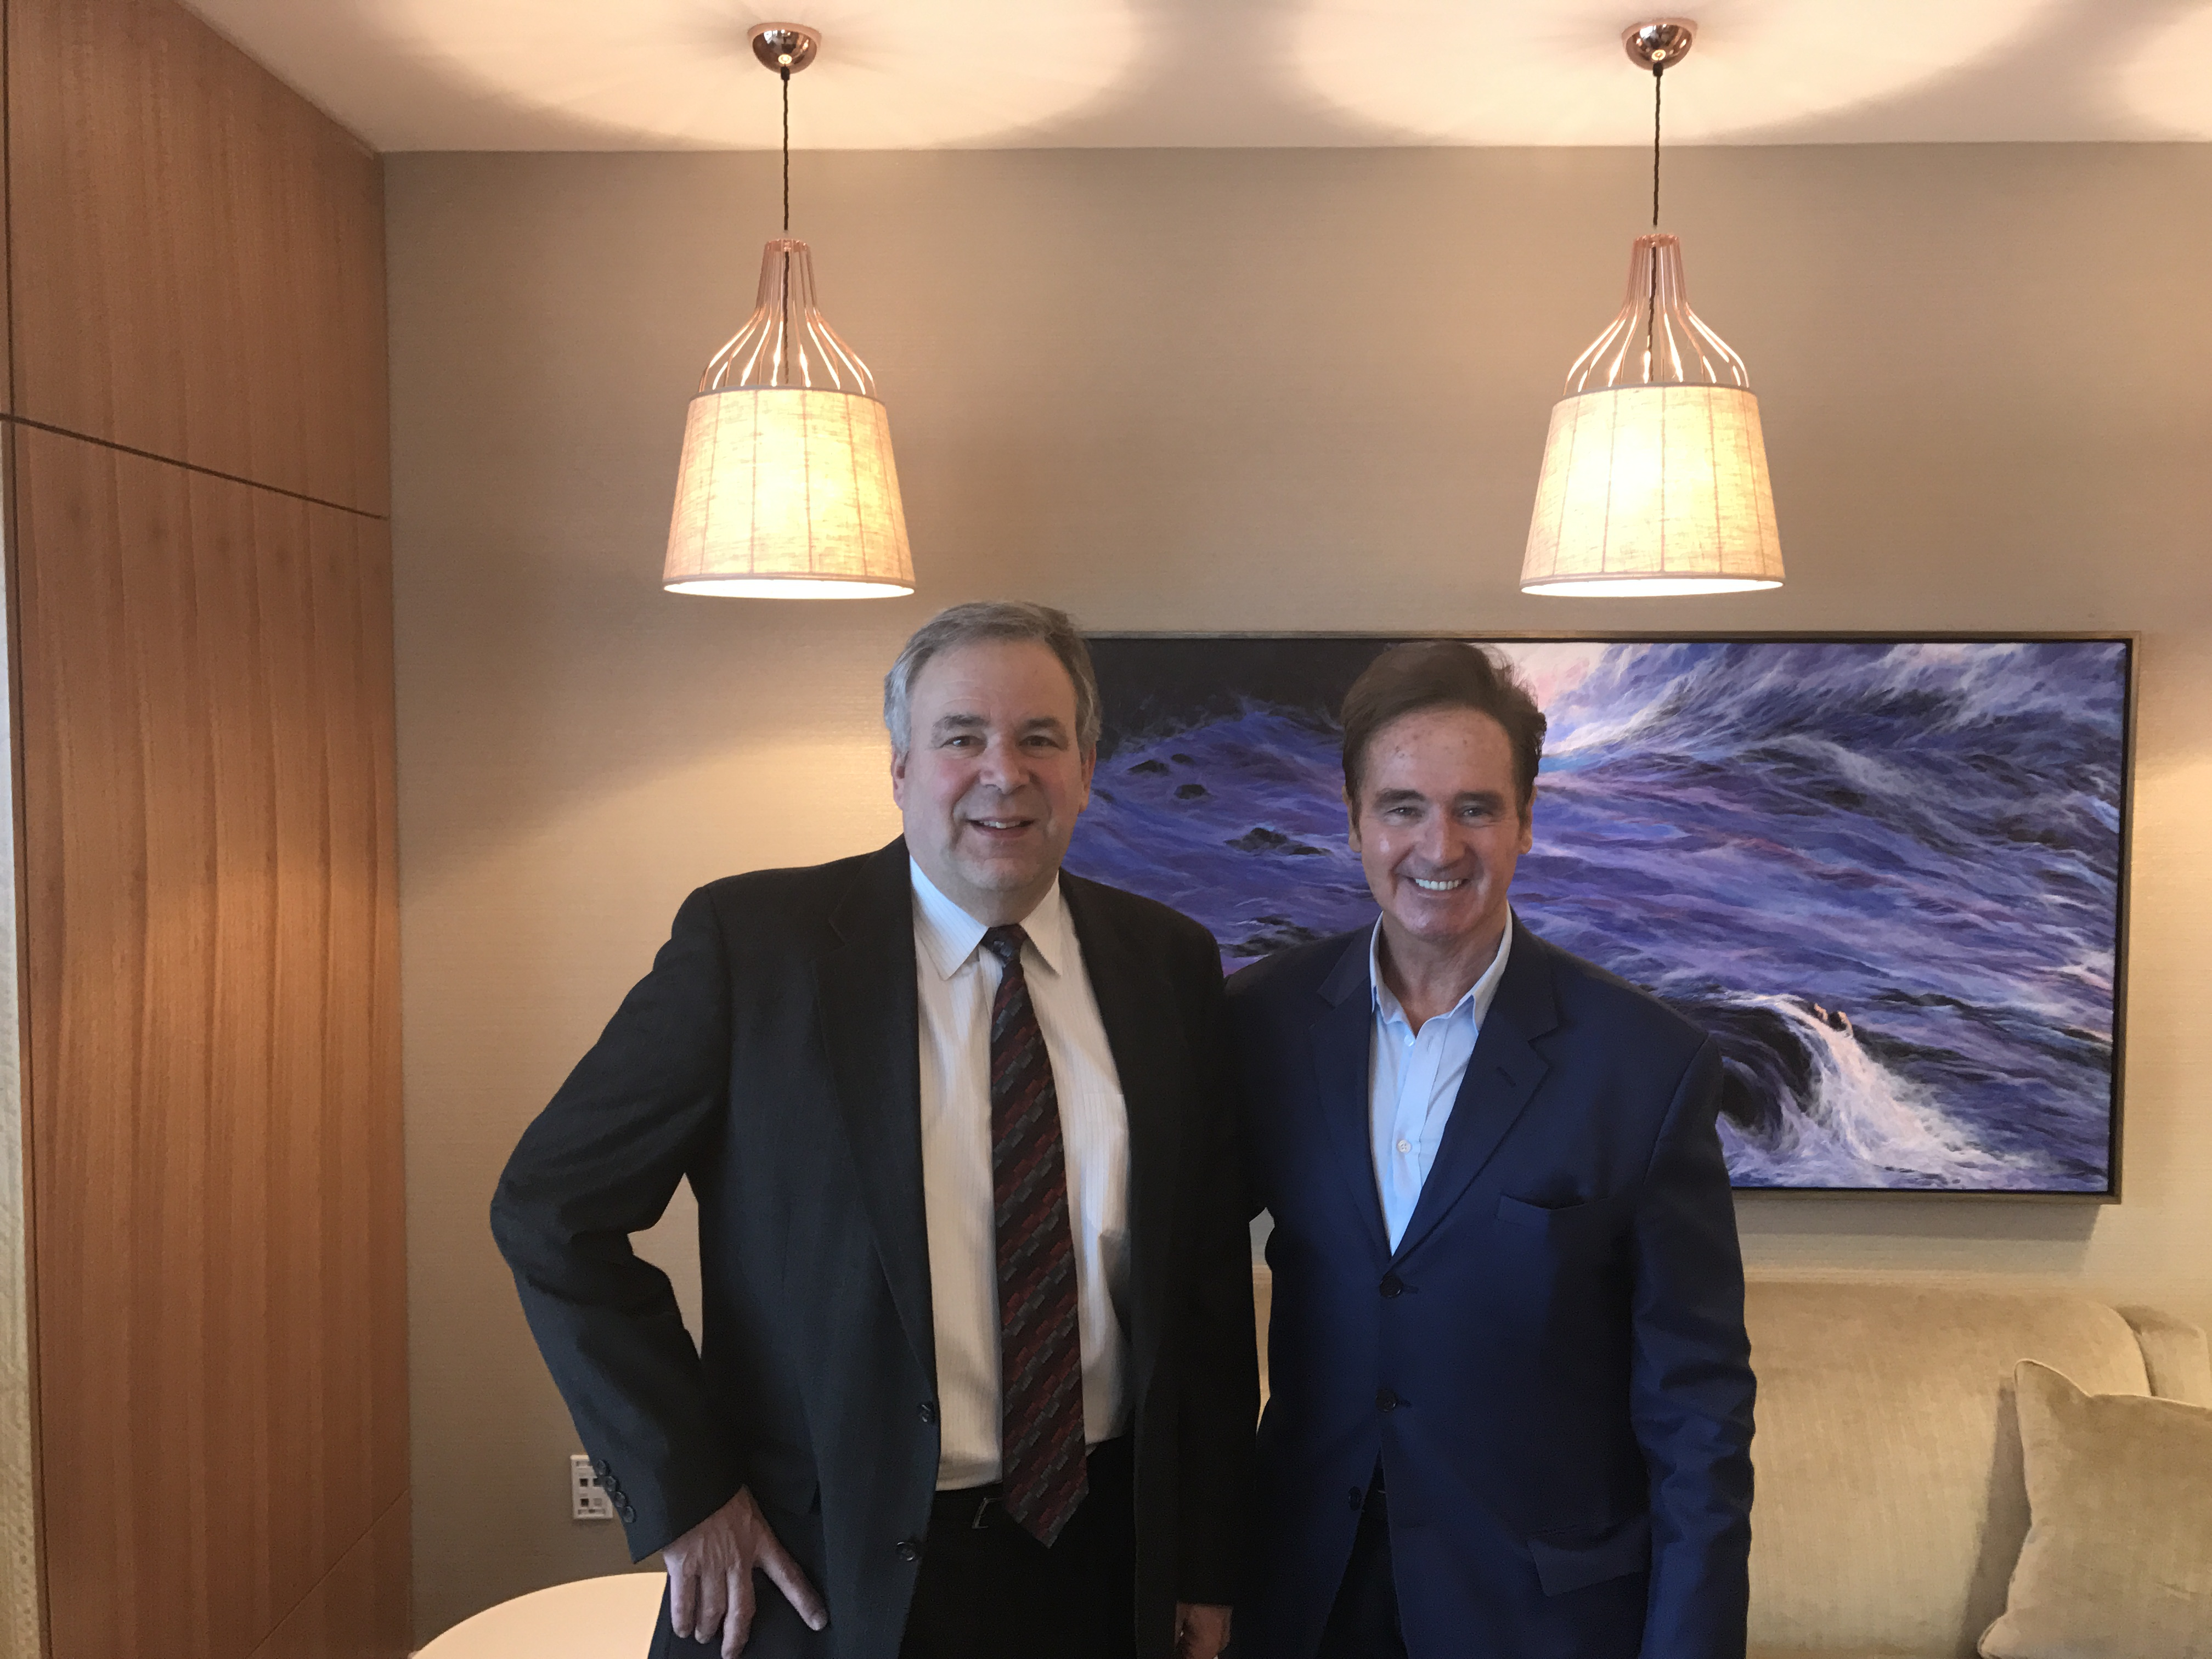 Brian Higgins (D NY), Right, Met With Life Storage (NYSE: LSI) CEO David  Rogers, Left, In Buffalo, New York. Rogers Provided Higgins, Who Is A  Member Of The ...